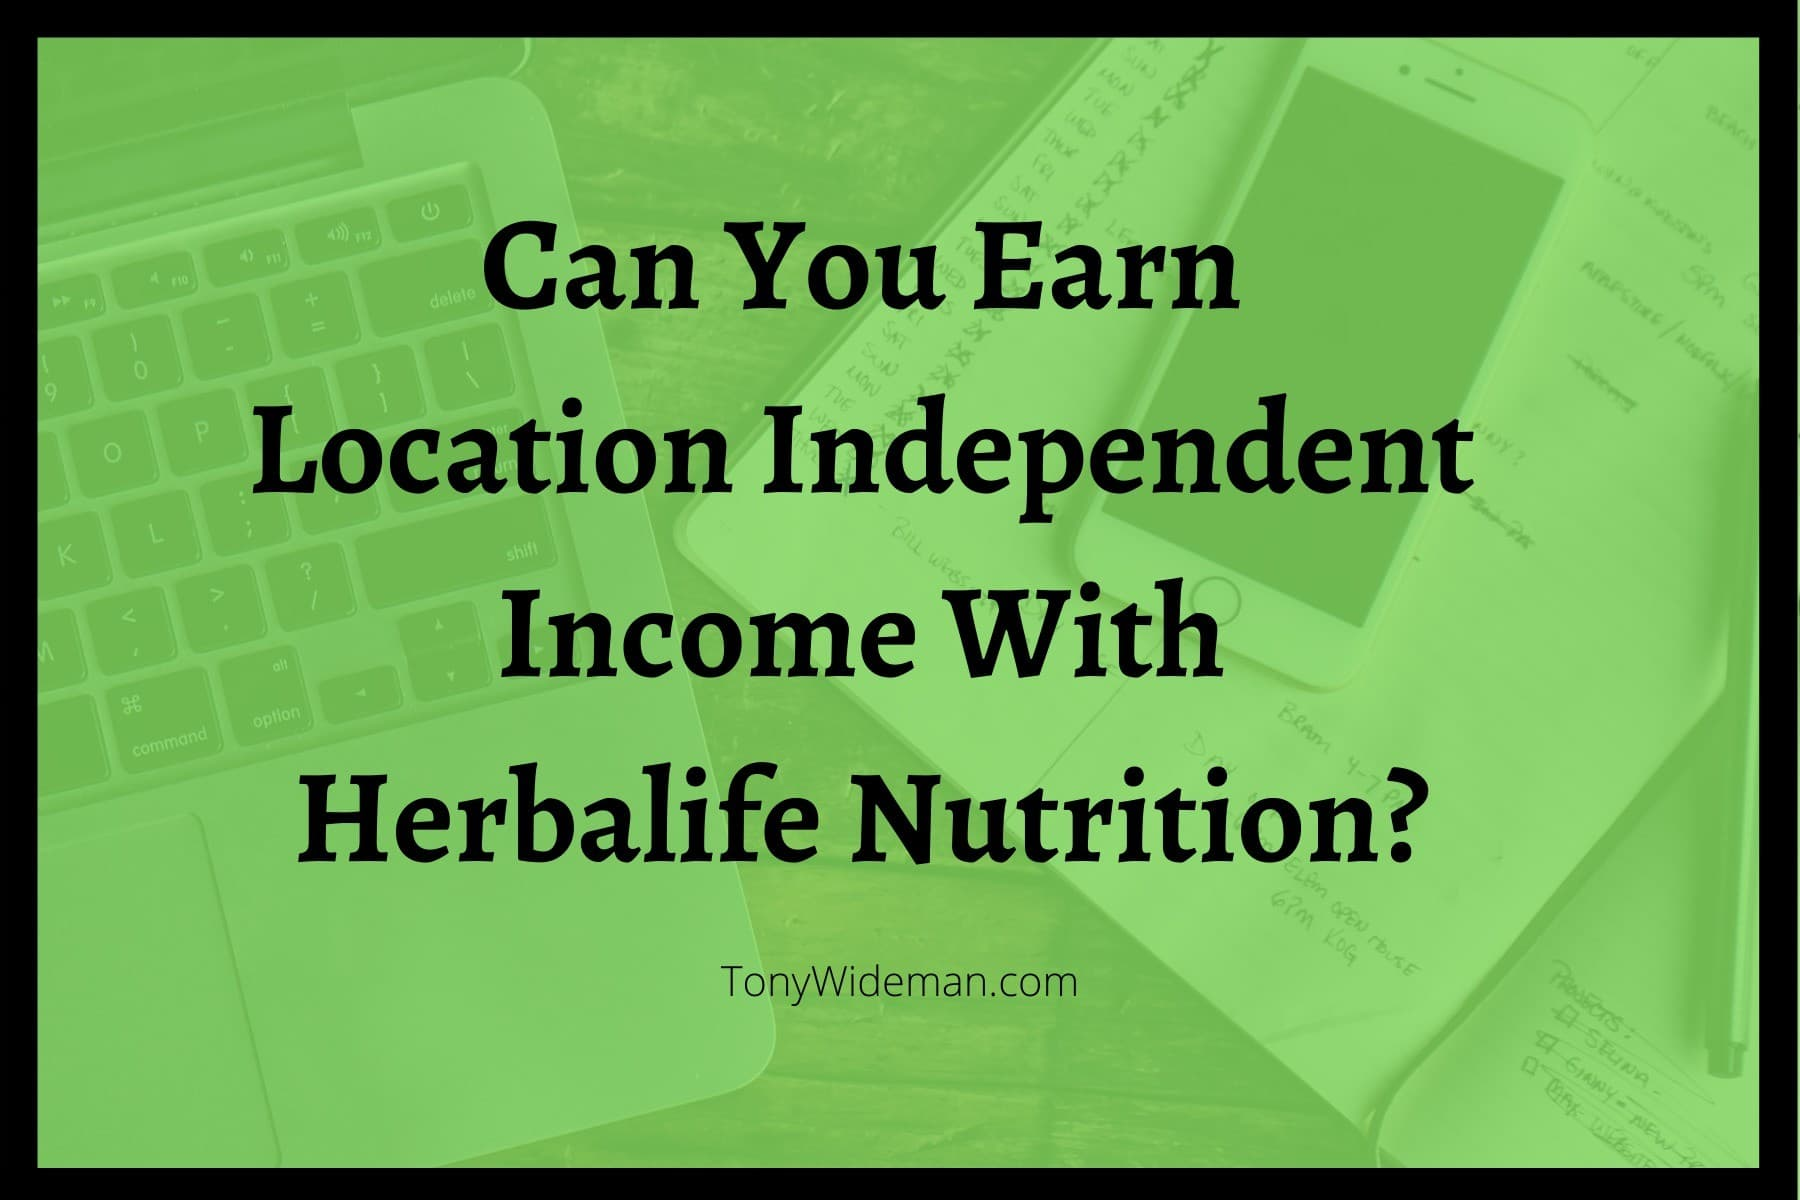 Is Herbalife Nutrition A Good Location Independent Income Opportunity?